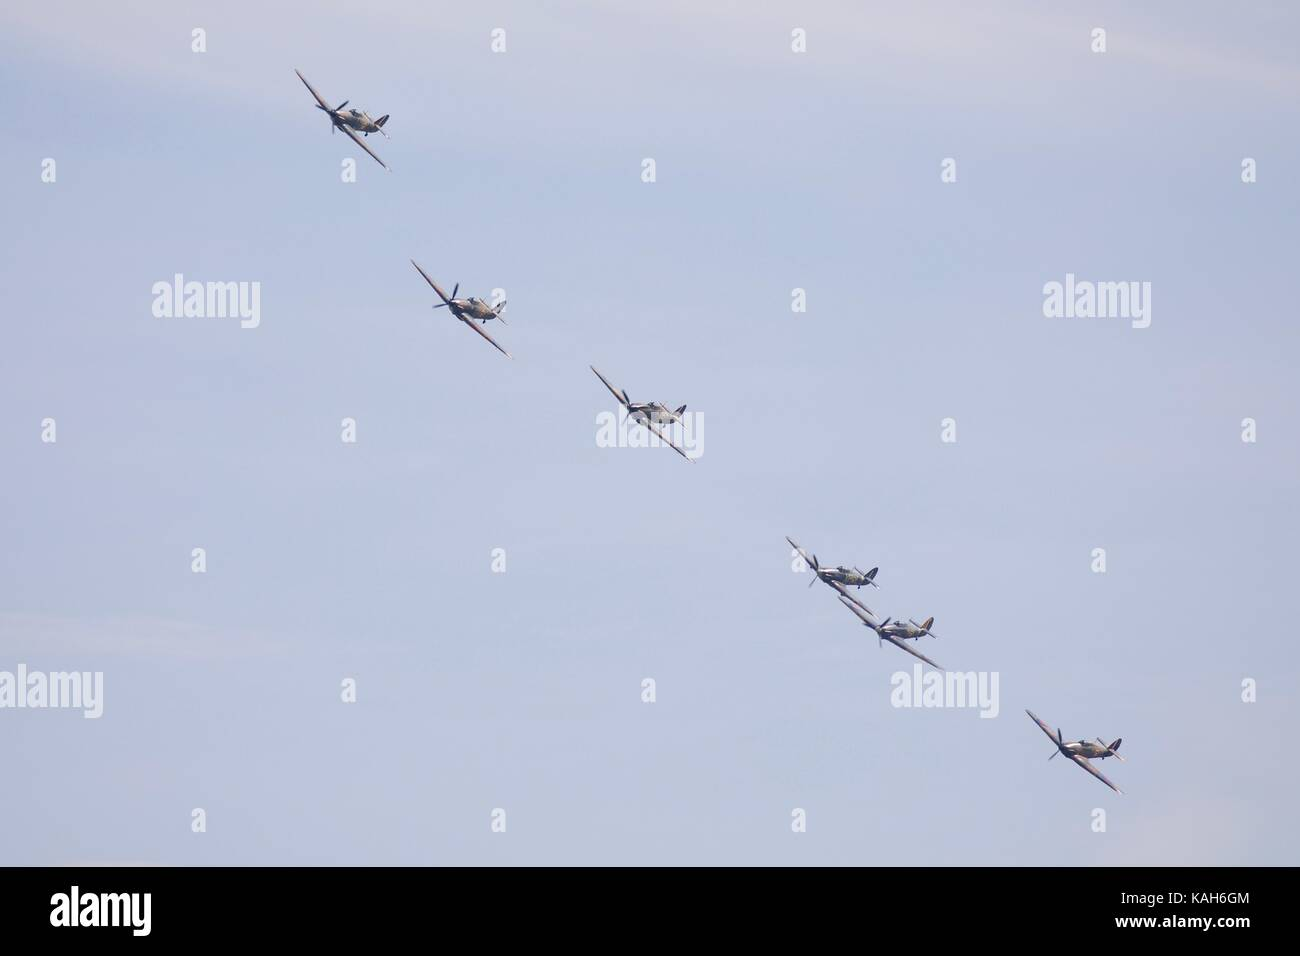 Six Hawker Hurricanes flying at Duxford 2017 Battle of Britain Air Show, the last time 6 Hawker Hurricanes flew - Stock Image